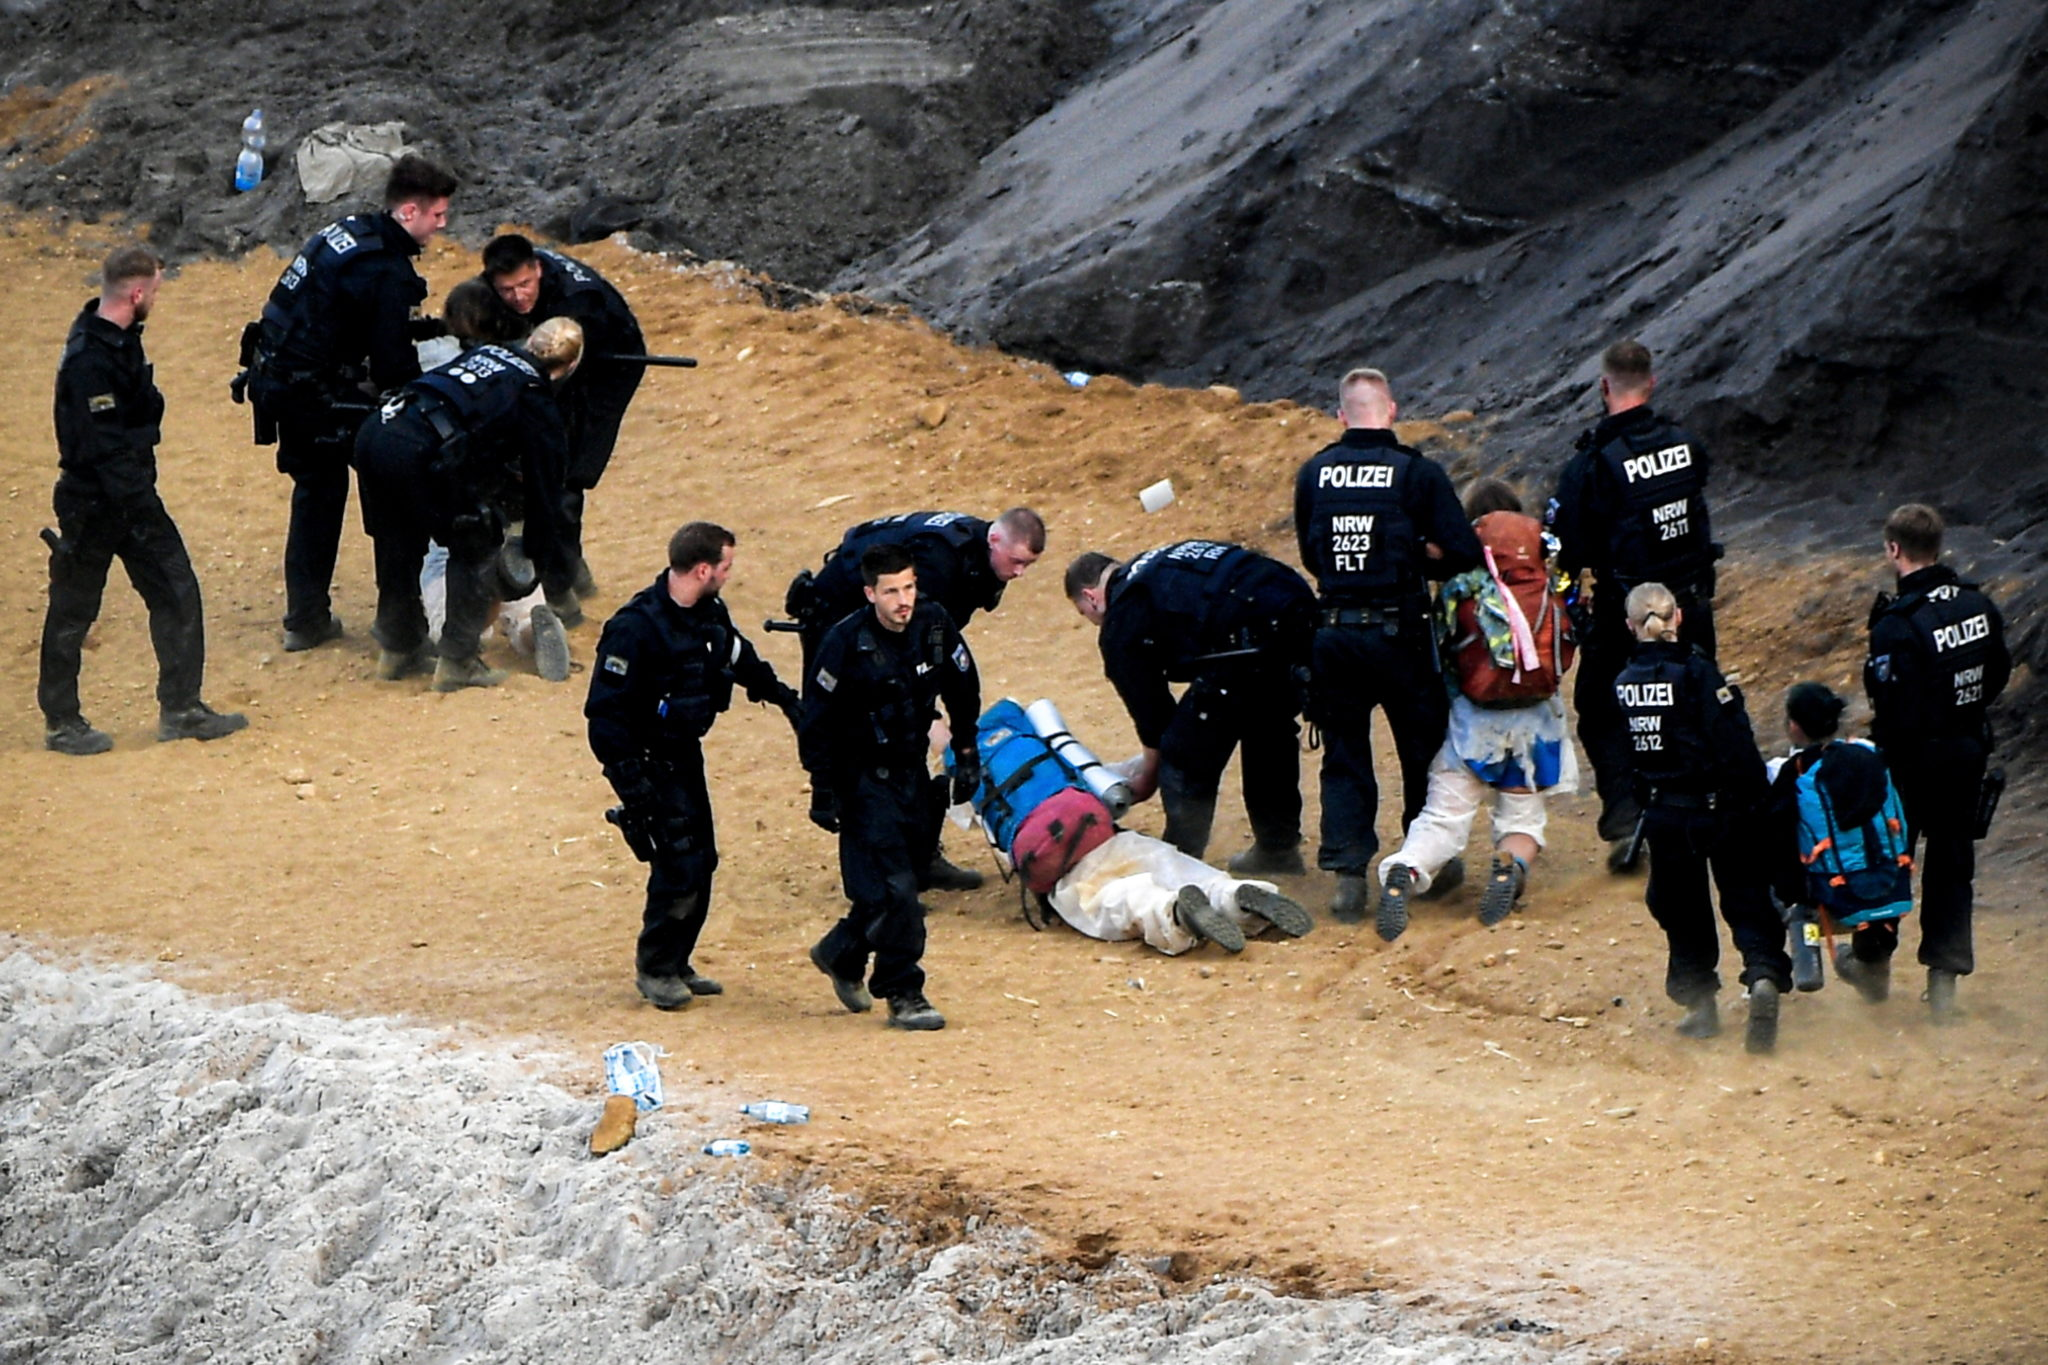 epa07667113 Activists taking part in the 'Ende Gelaende' protest initiative face a police cordon in a pit in the Rhenish coal mining area around Garzweiler in Jackerath, Germany, 22 June 2019. Several thousand protestors are expected at the 'Ende Gelaende' event from 19 through 24 June 2019.  EPA/SASCHA STEINBACH  Dostawca: PAP/EPA.